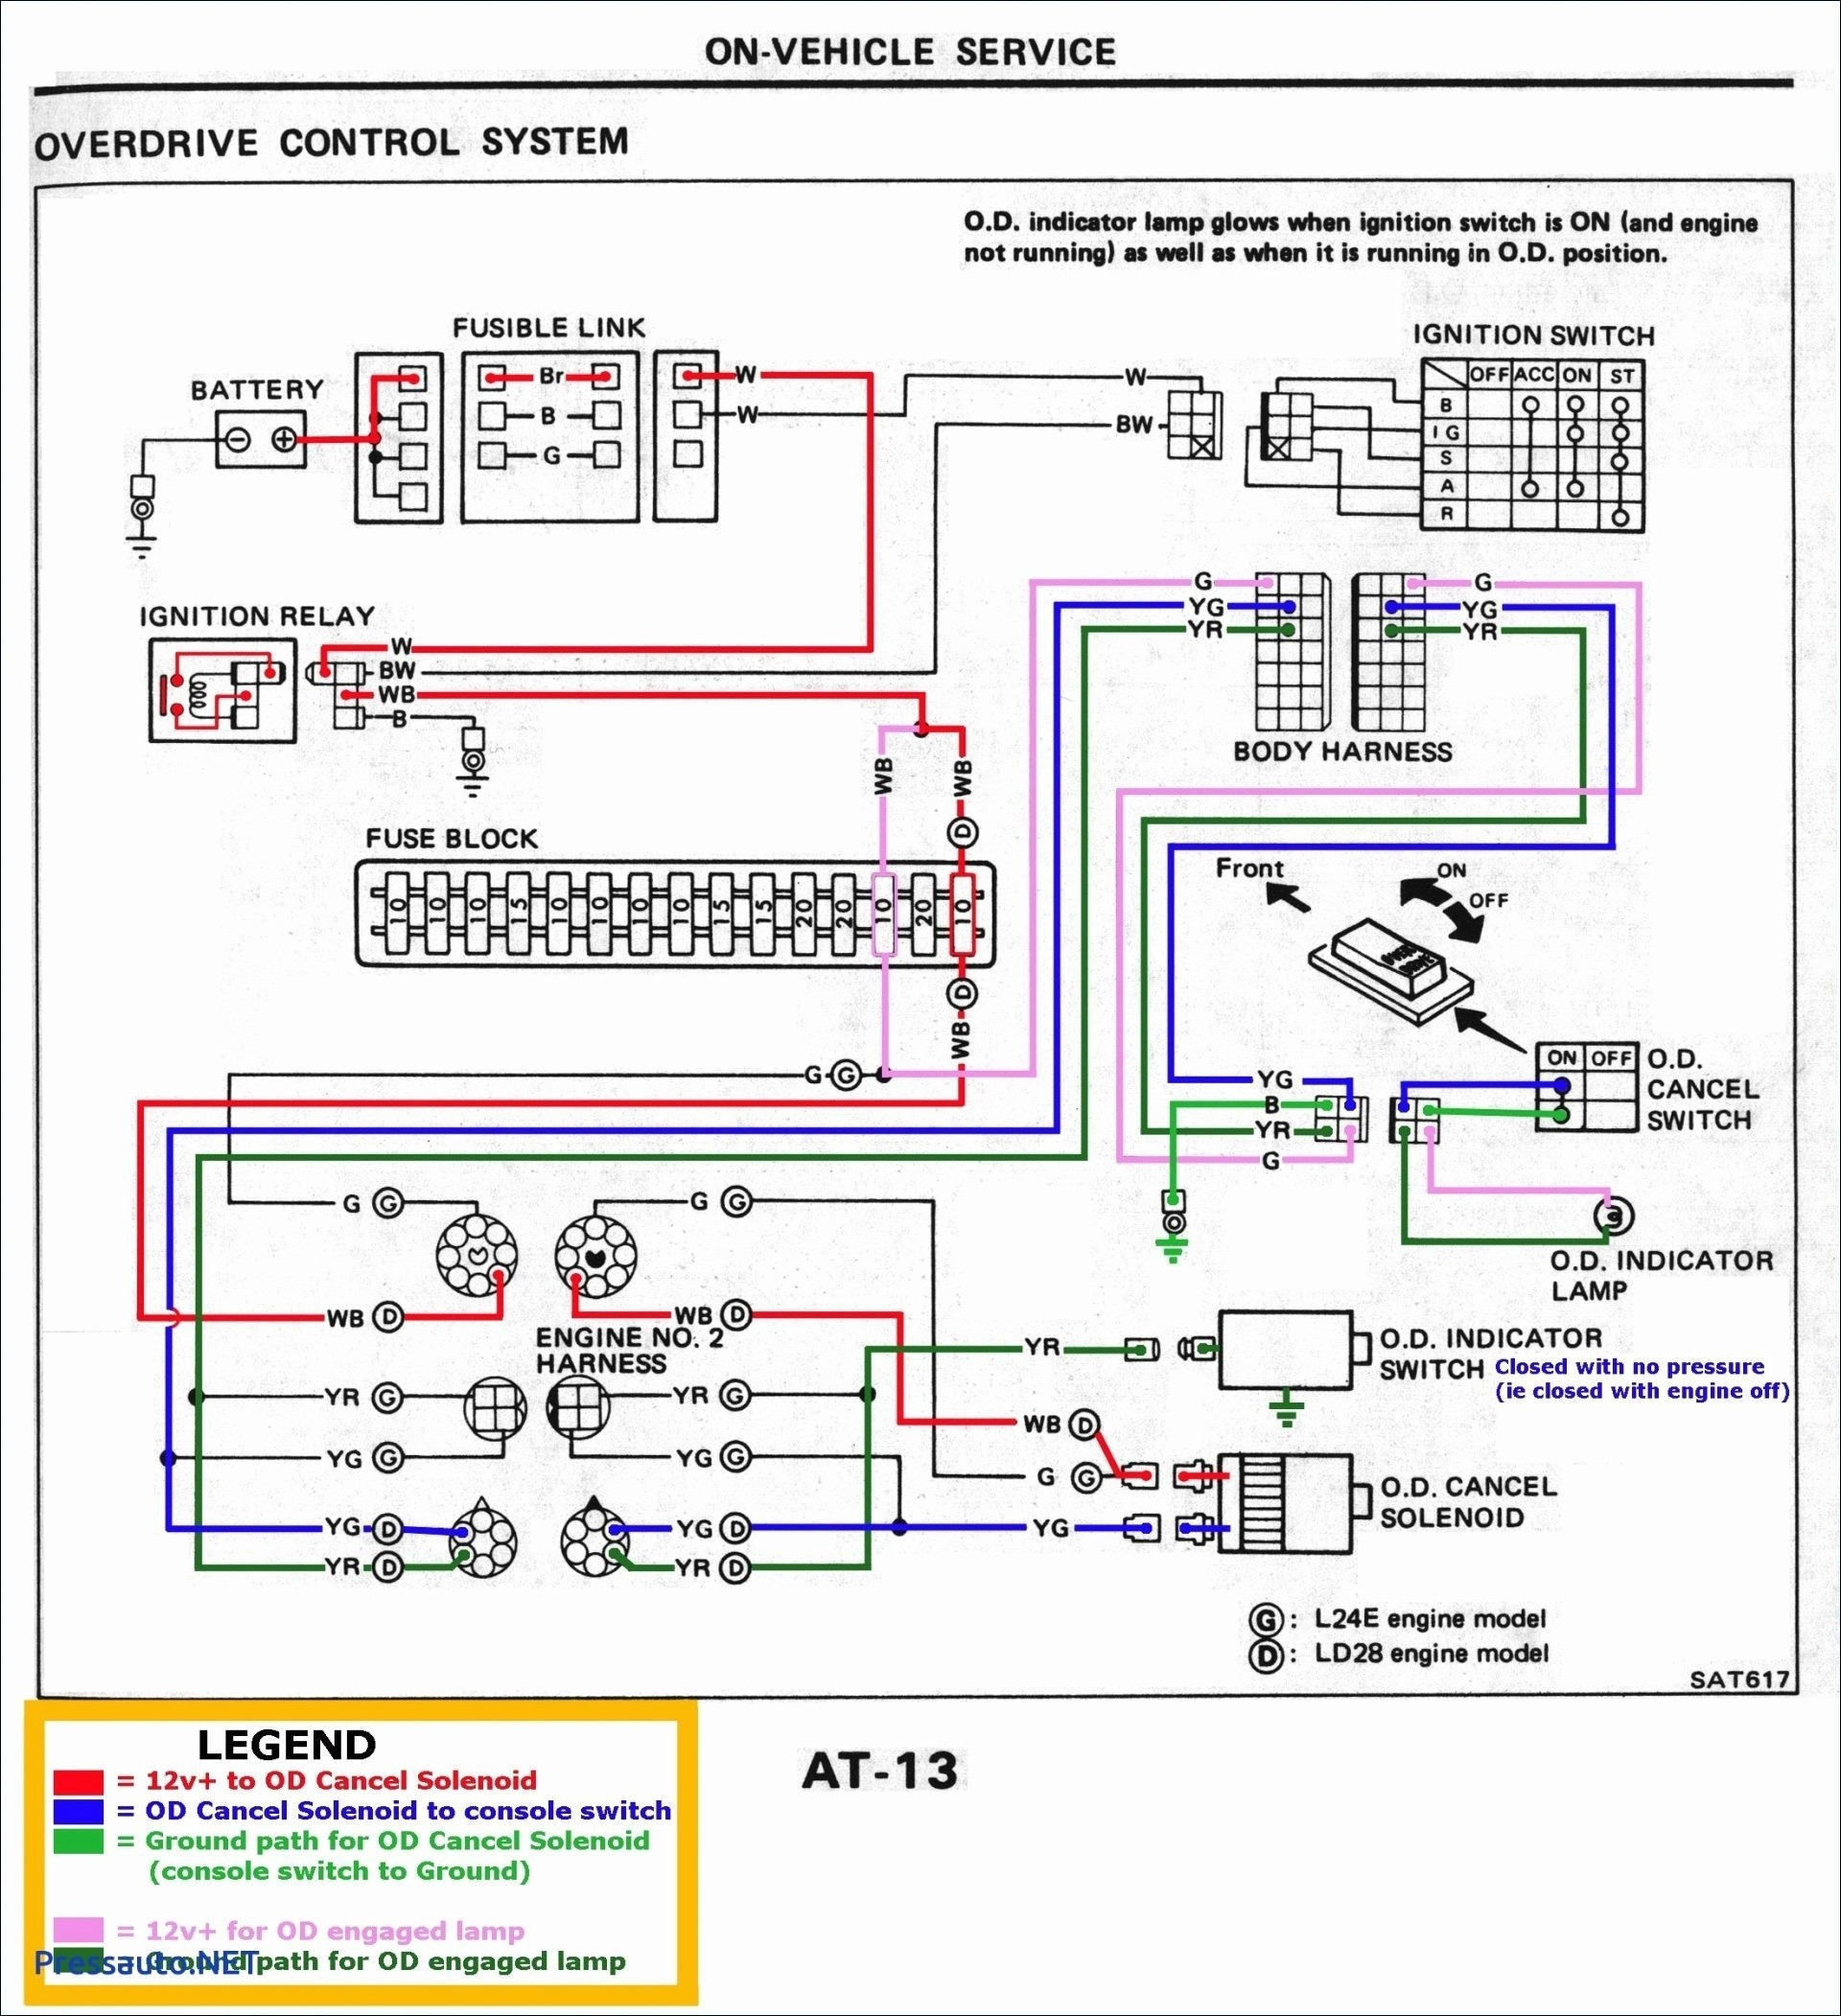 dodge ram wiring harness diagram | free wiring diagram ram manufacturing wiring diagram 2011 dodge ram stereo wiring diagram